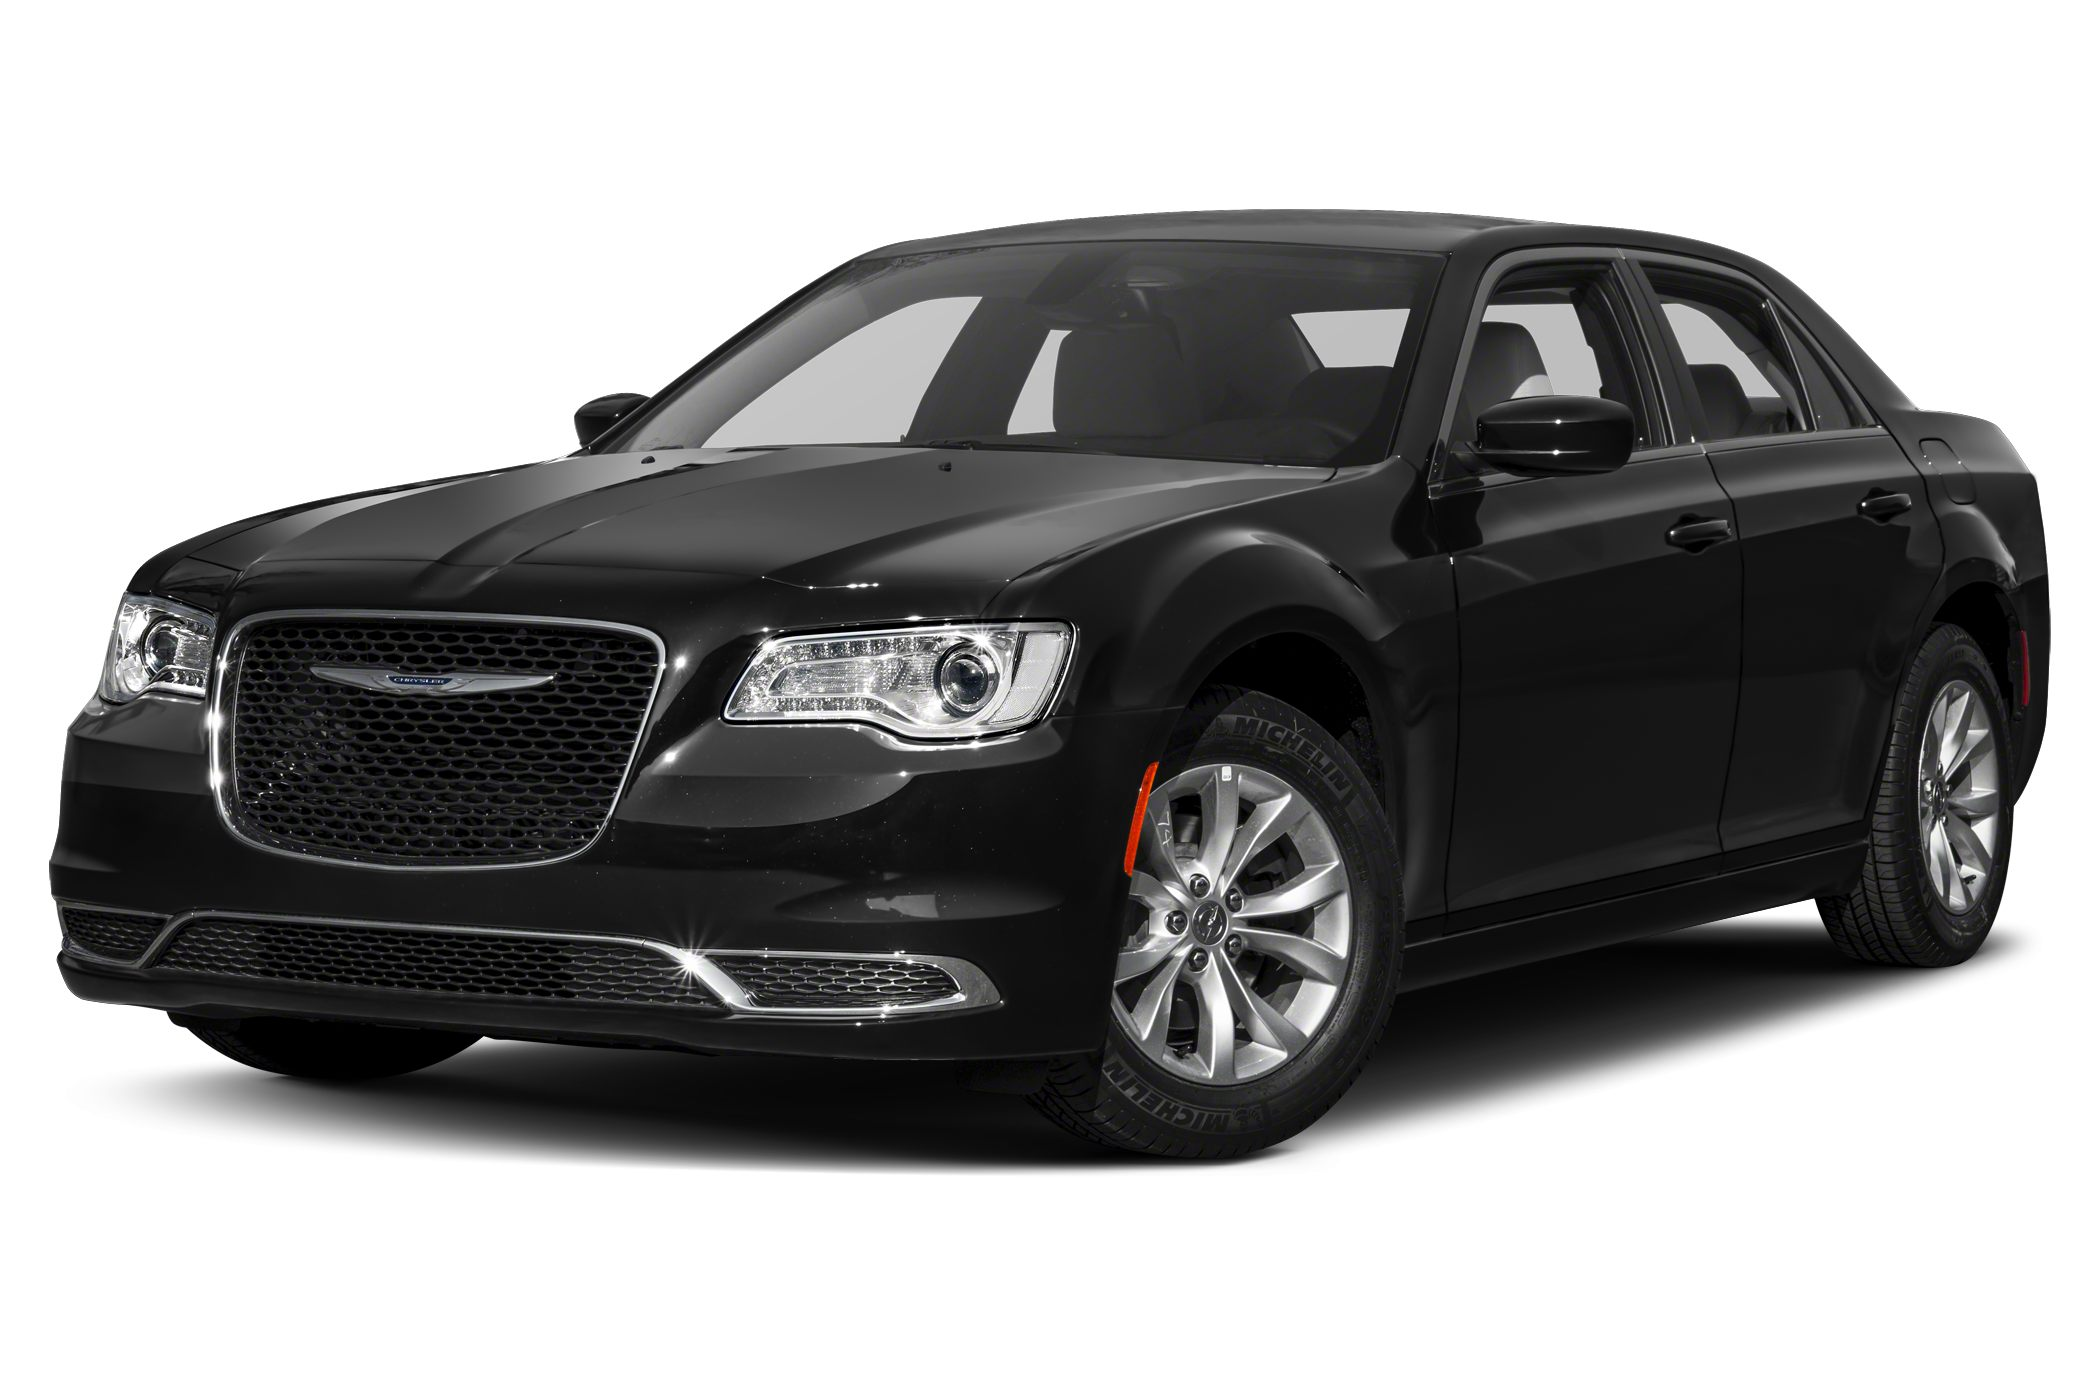 2015 Chrysler 300 Limited Gas miser 31 MPG Hwy Wont last long As much as it alters the roa